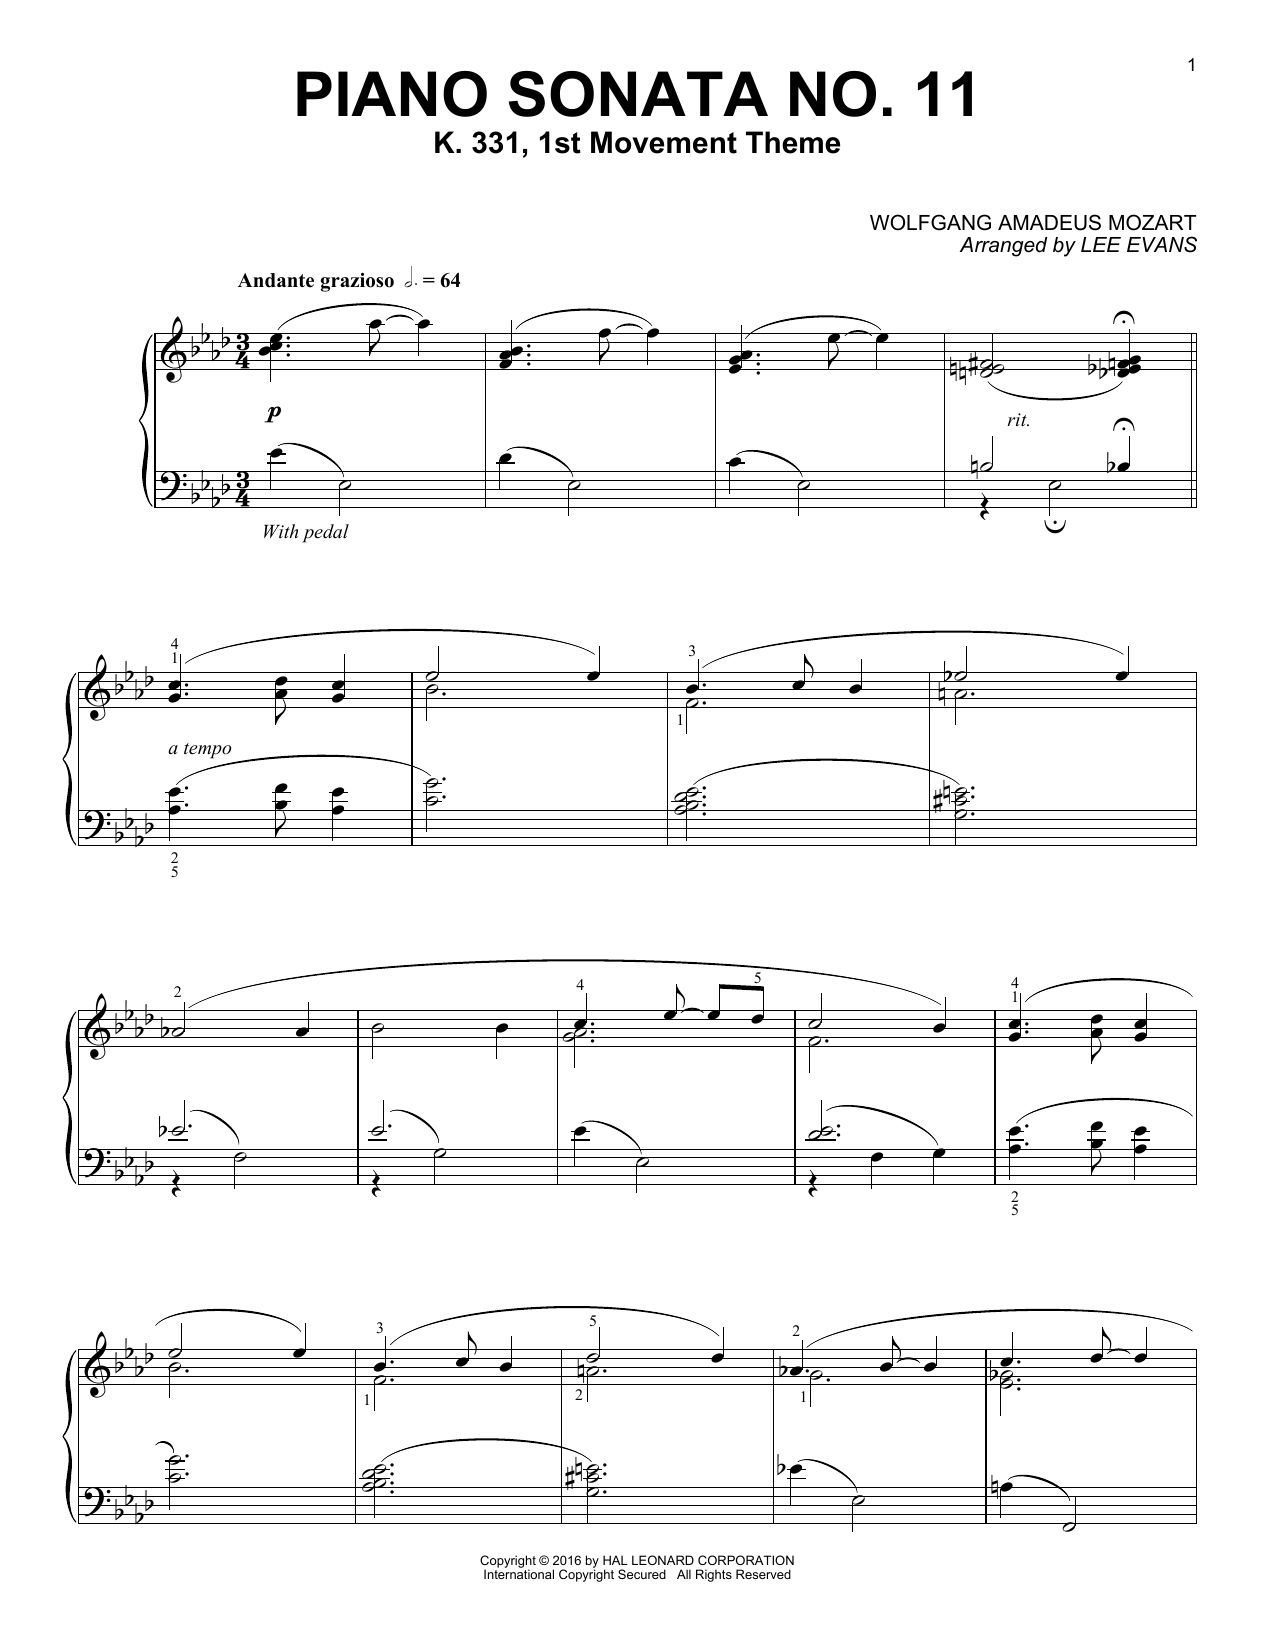 Lee Evans Piano Sonata In A Major, K.331, 1st Movement sheet music notes and chords. Download Printable PDF.